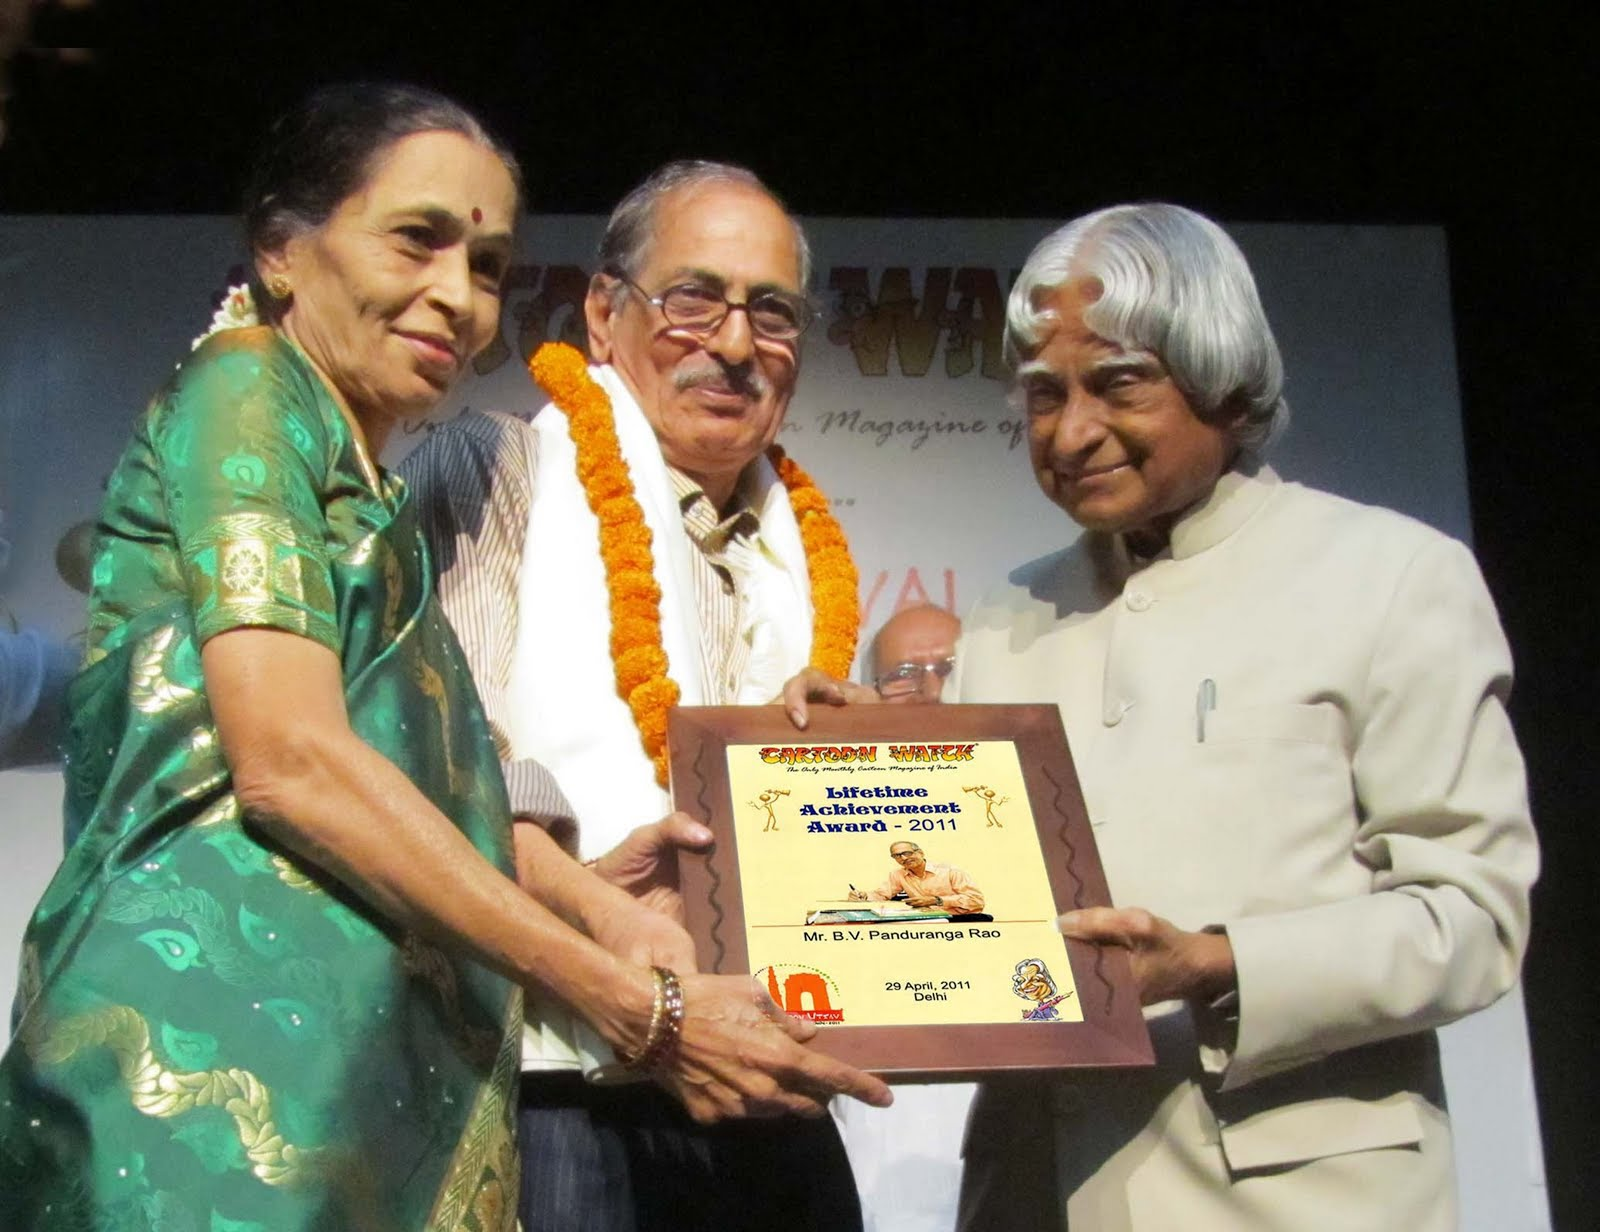 Felicitated by Life Time achievement award  Dr Abdul Kalam at Cartoon Festival - 2011 at new Delhi